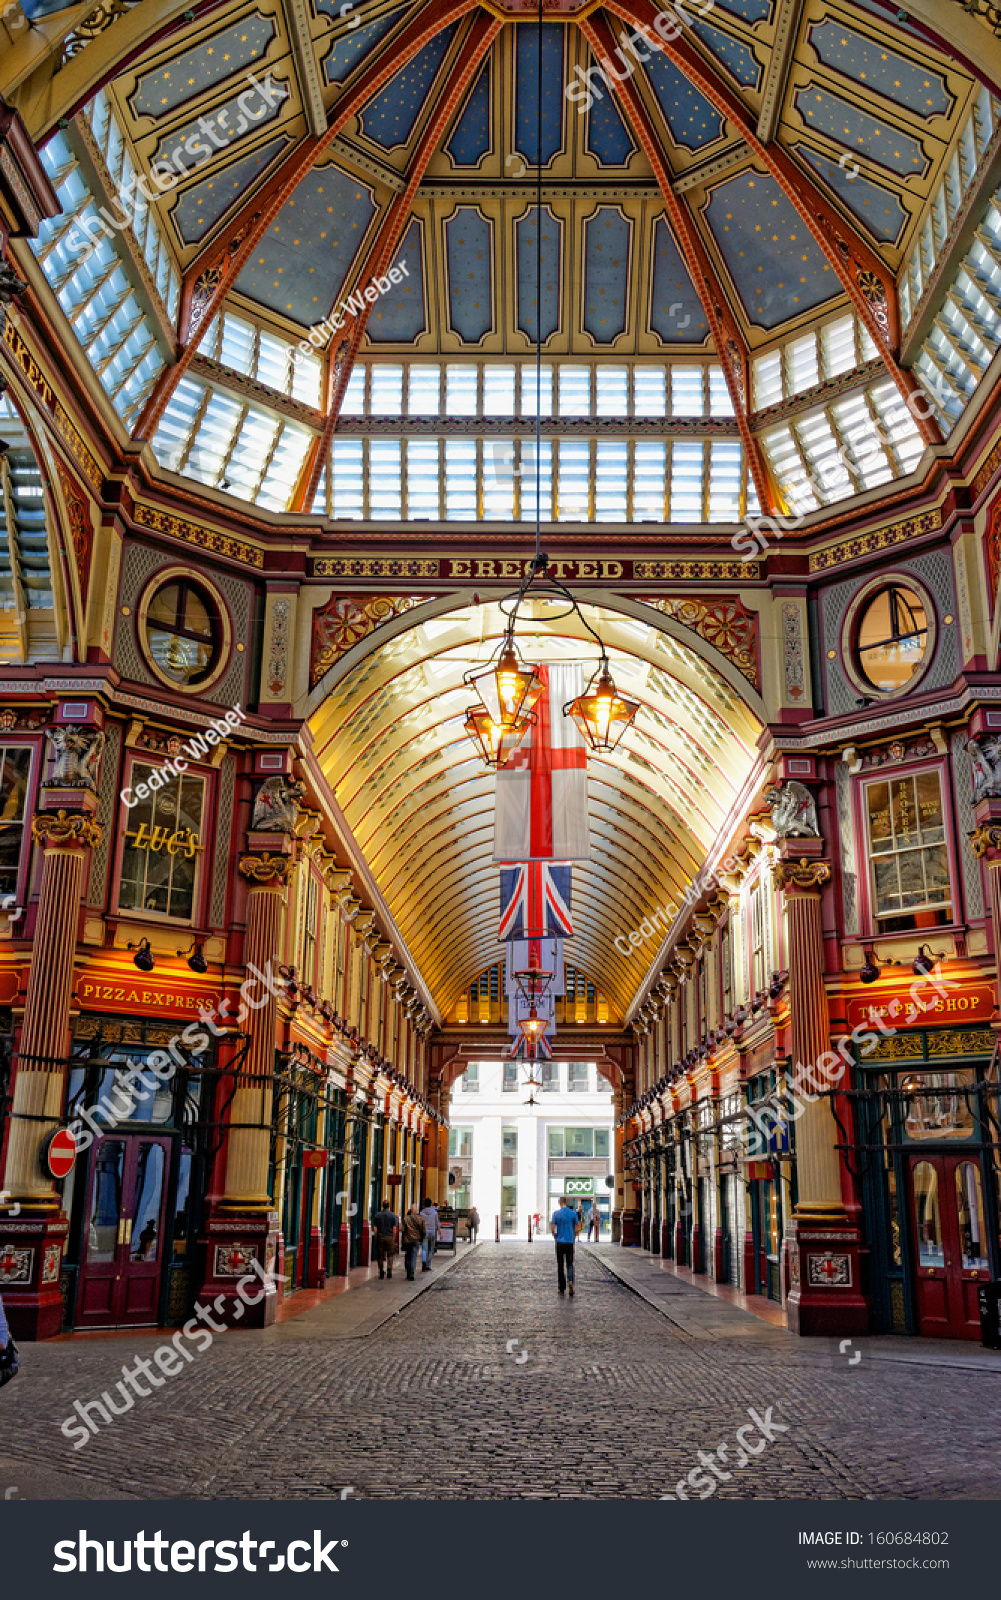 LONDON APR 5 Leadenhall covered market interior pictured on April 5th 2013 in London UK The market dates back to the 14th century and formed part of the marathon course of the 2012 Olympics